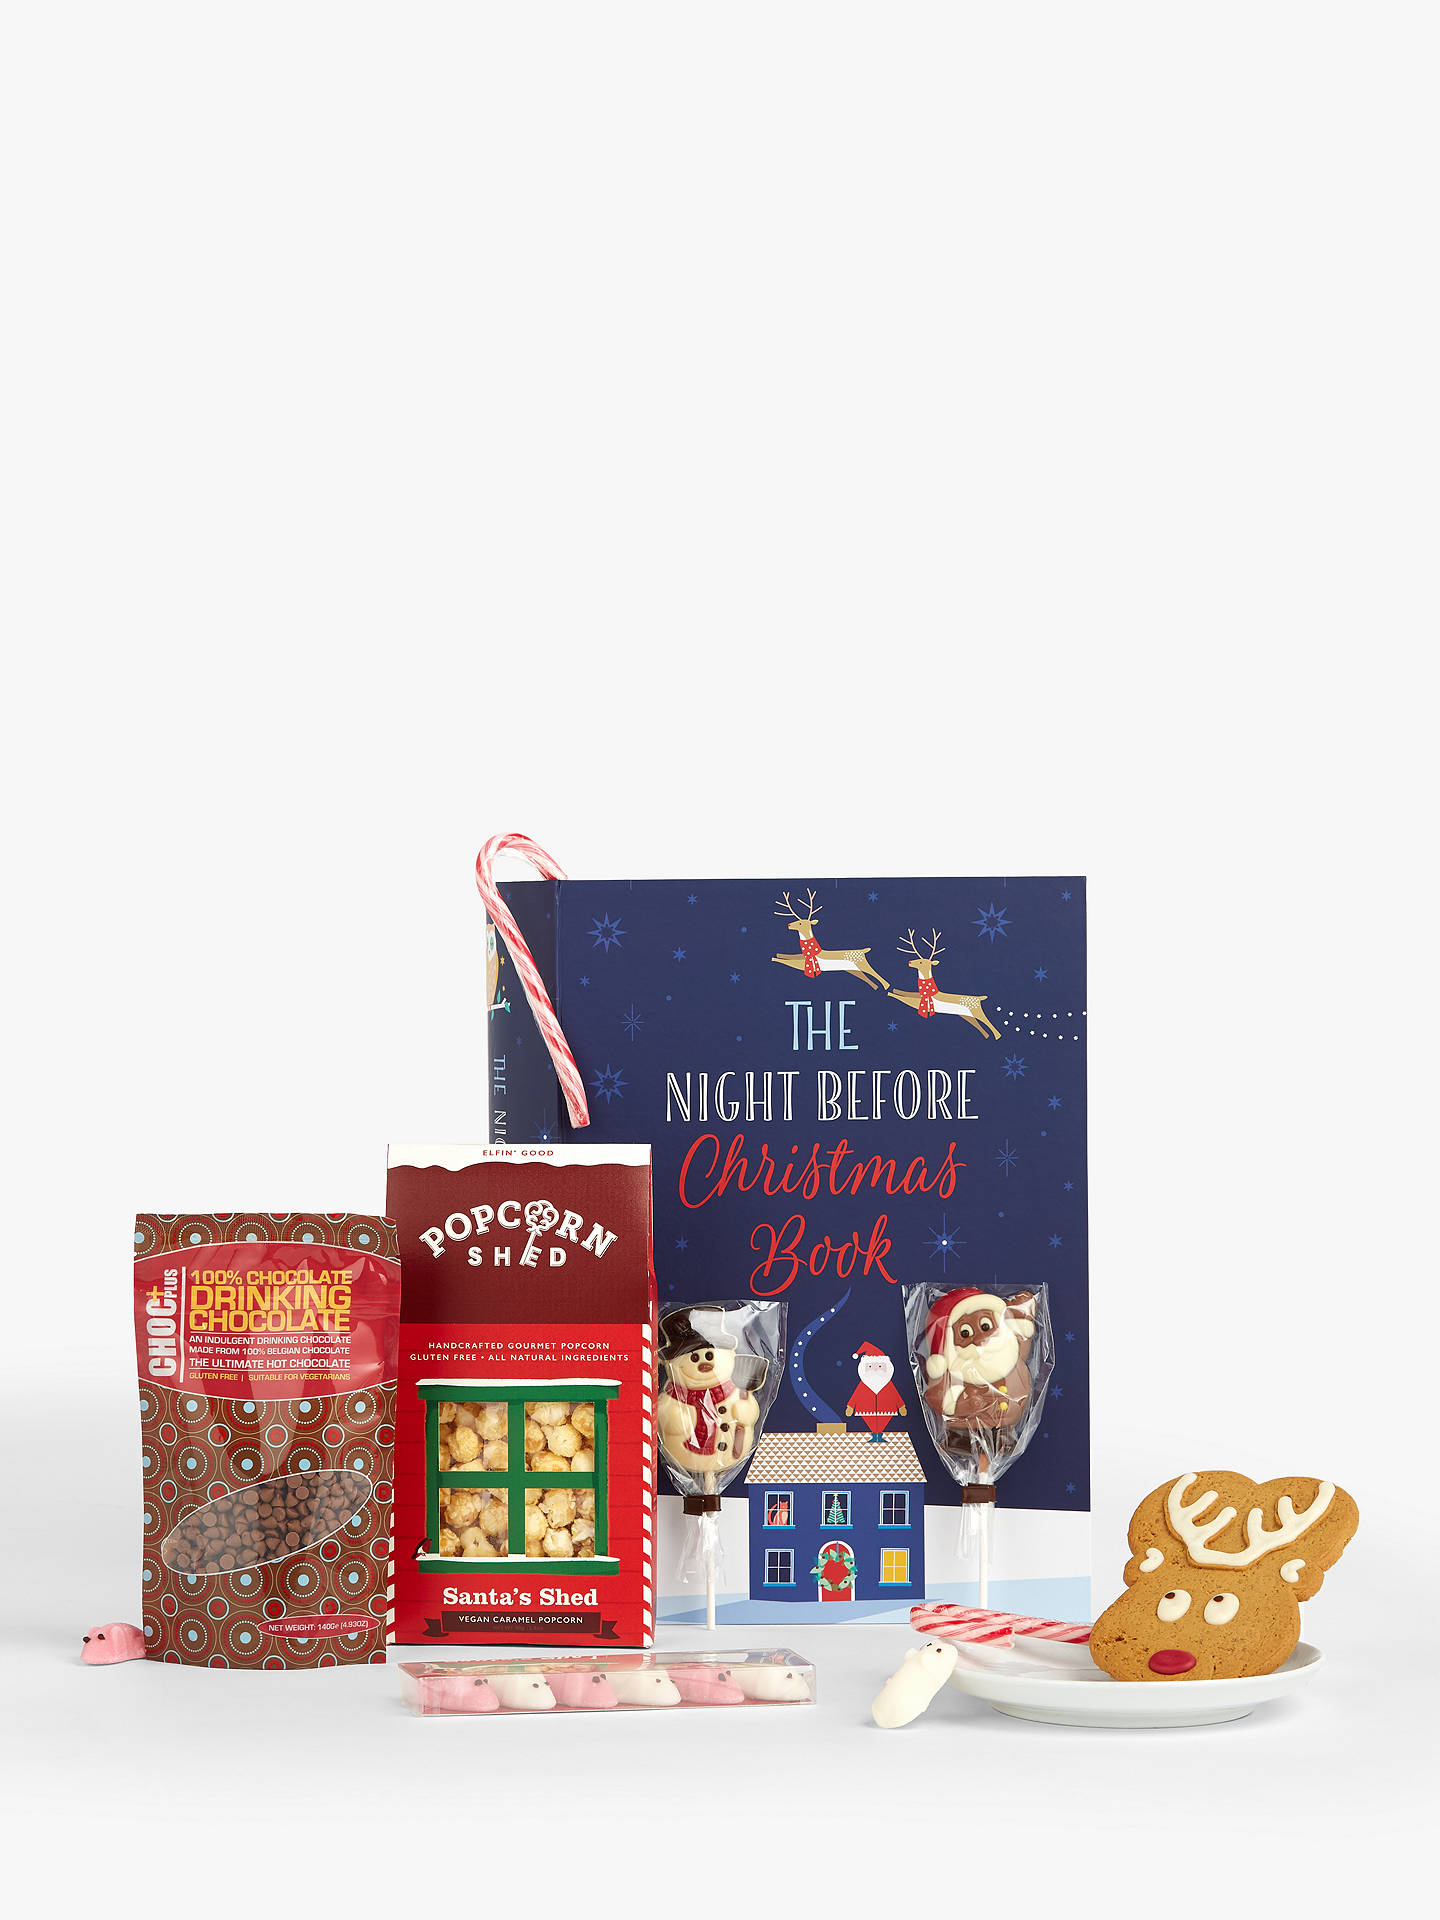 Buy John Lewis & Partners The Night Before Christmas Gift Book Online at johnlewis.com